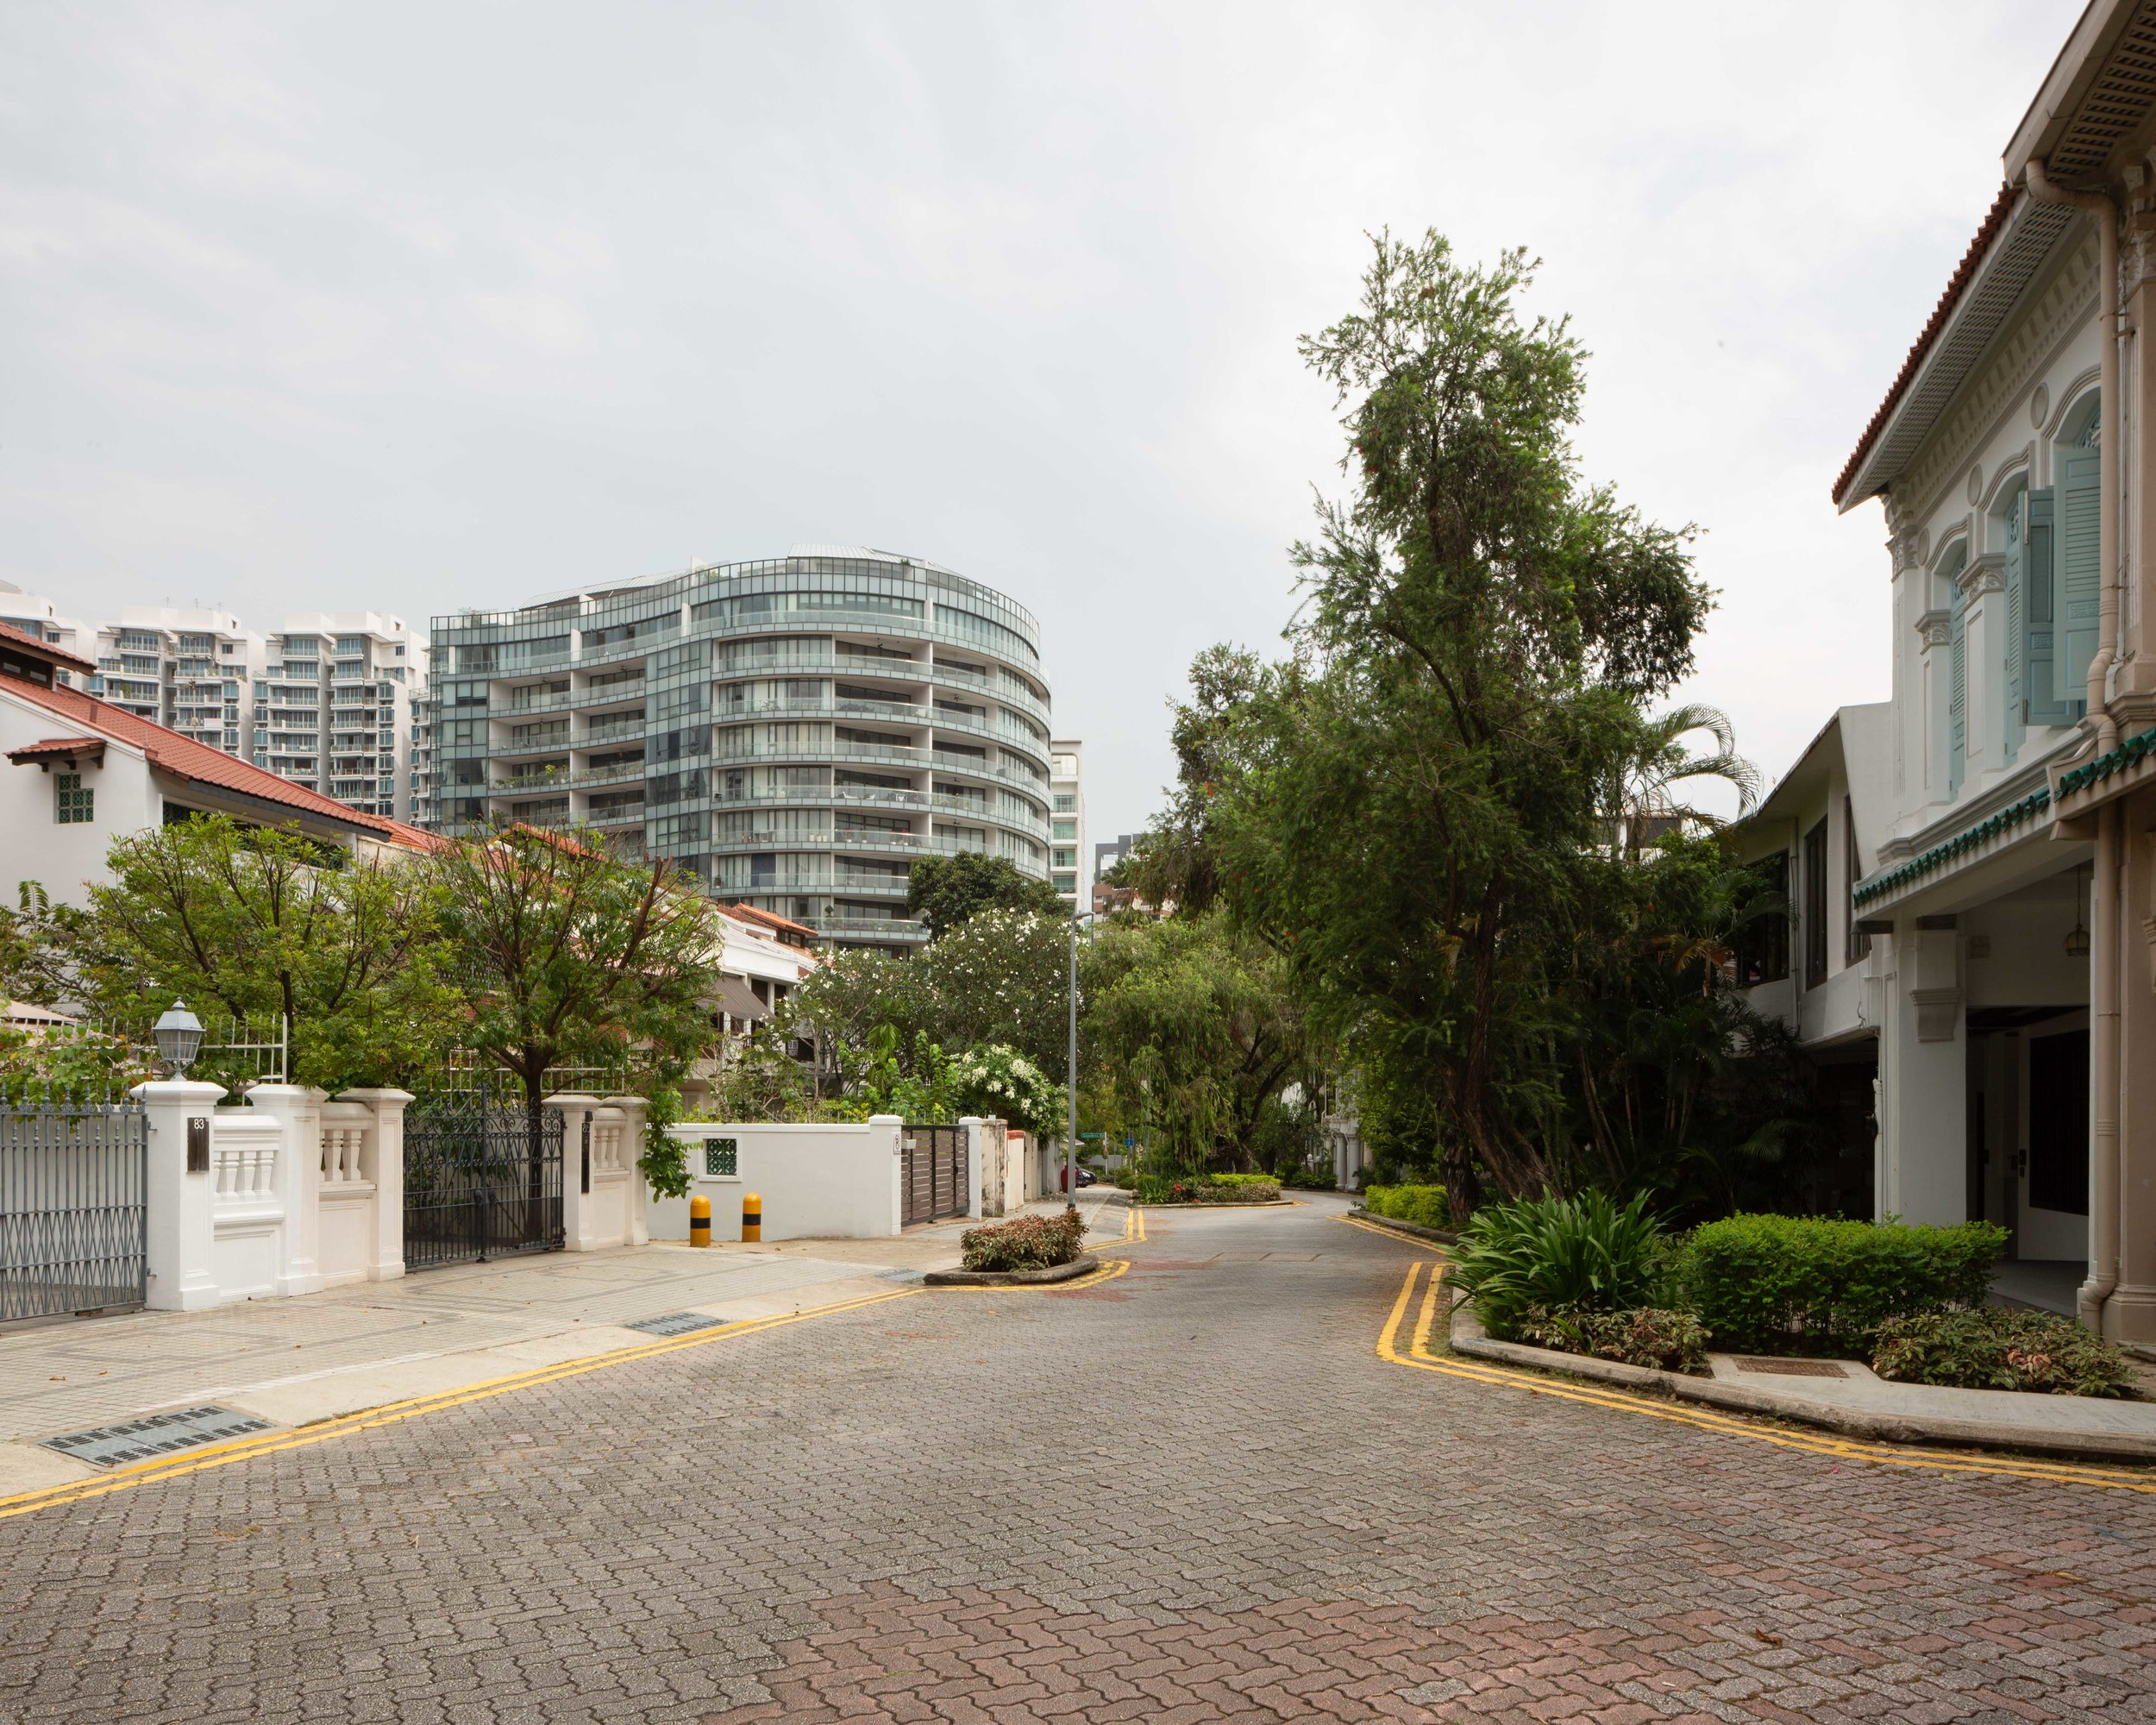 Looking down Emerald Hill Road with a glass-clad condominium in the background